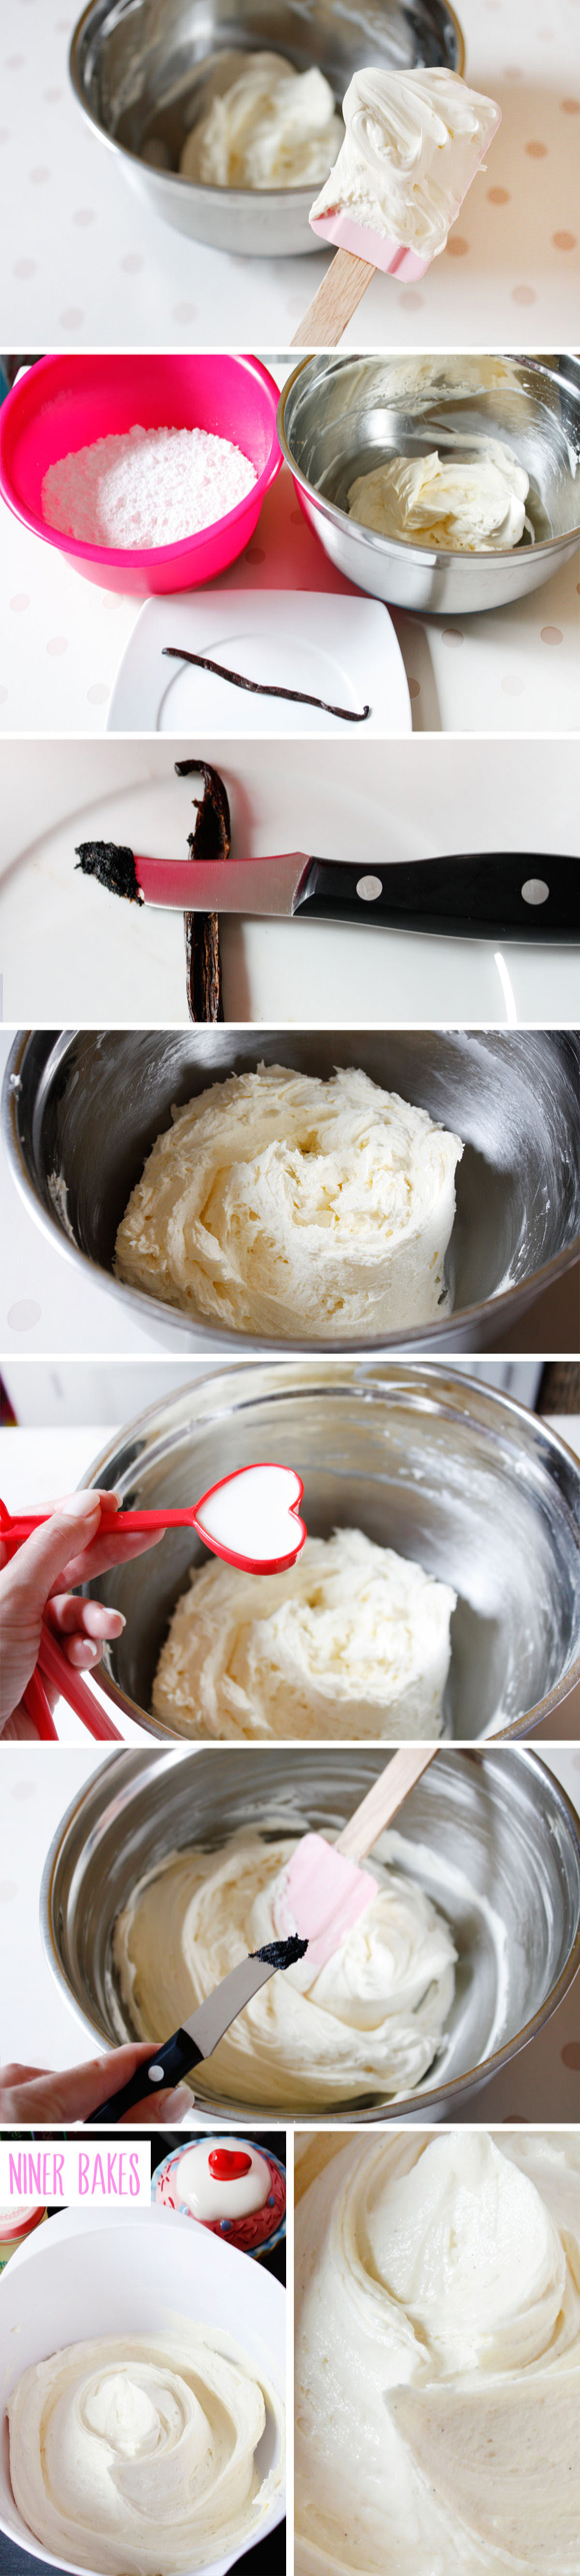 step by step-3 - vanilla bean frosting how to by niner bakes